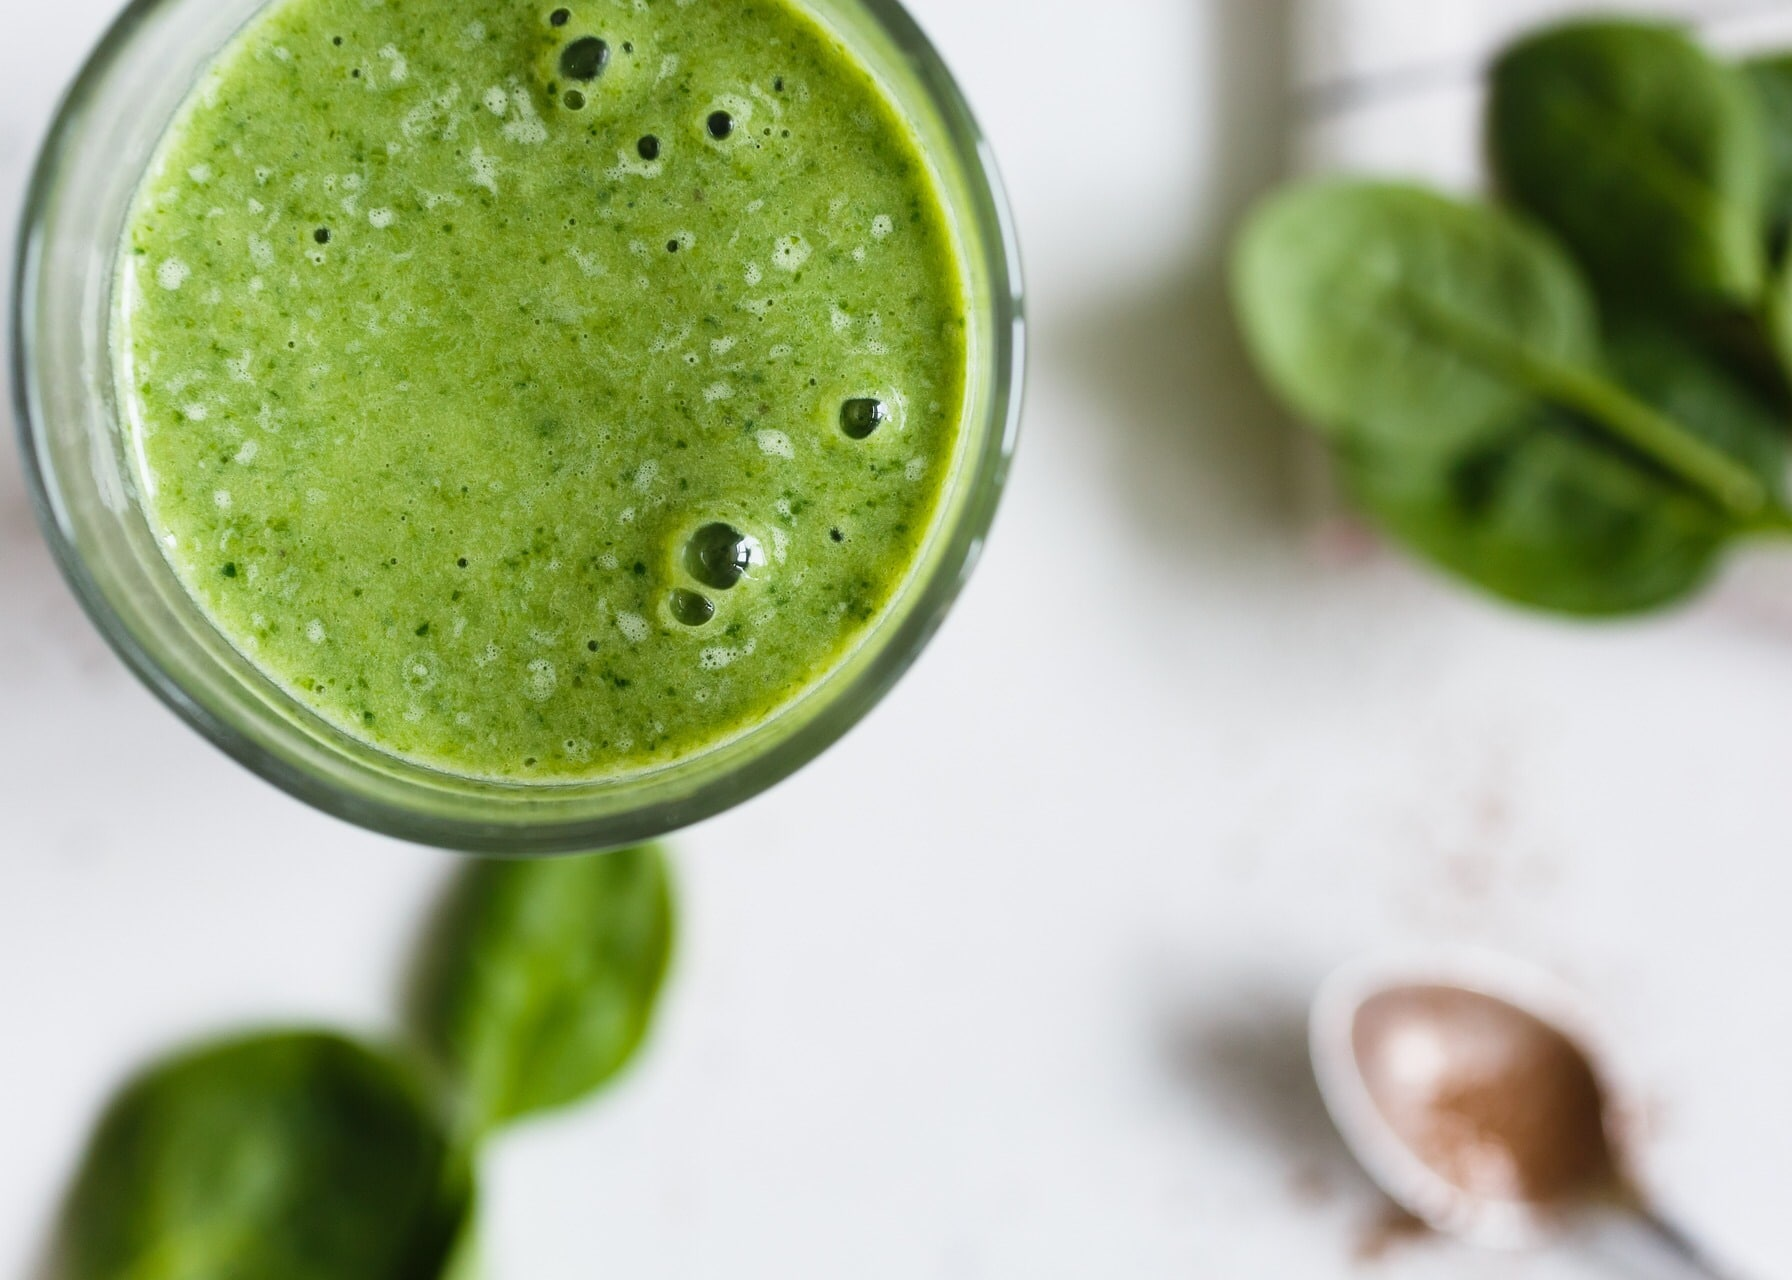 Green smoothie with brass spoon